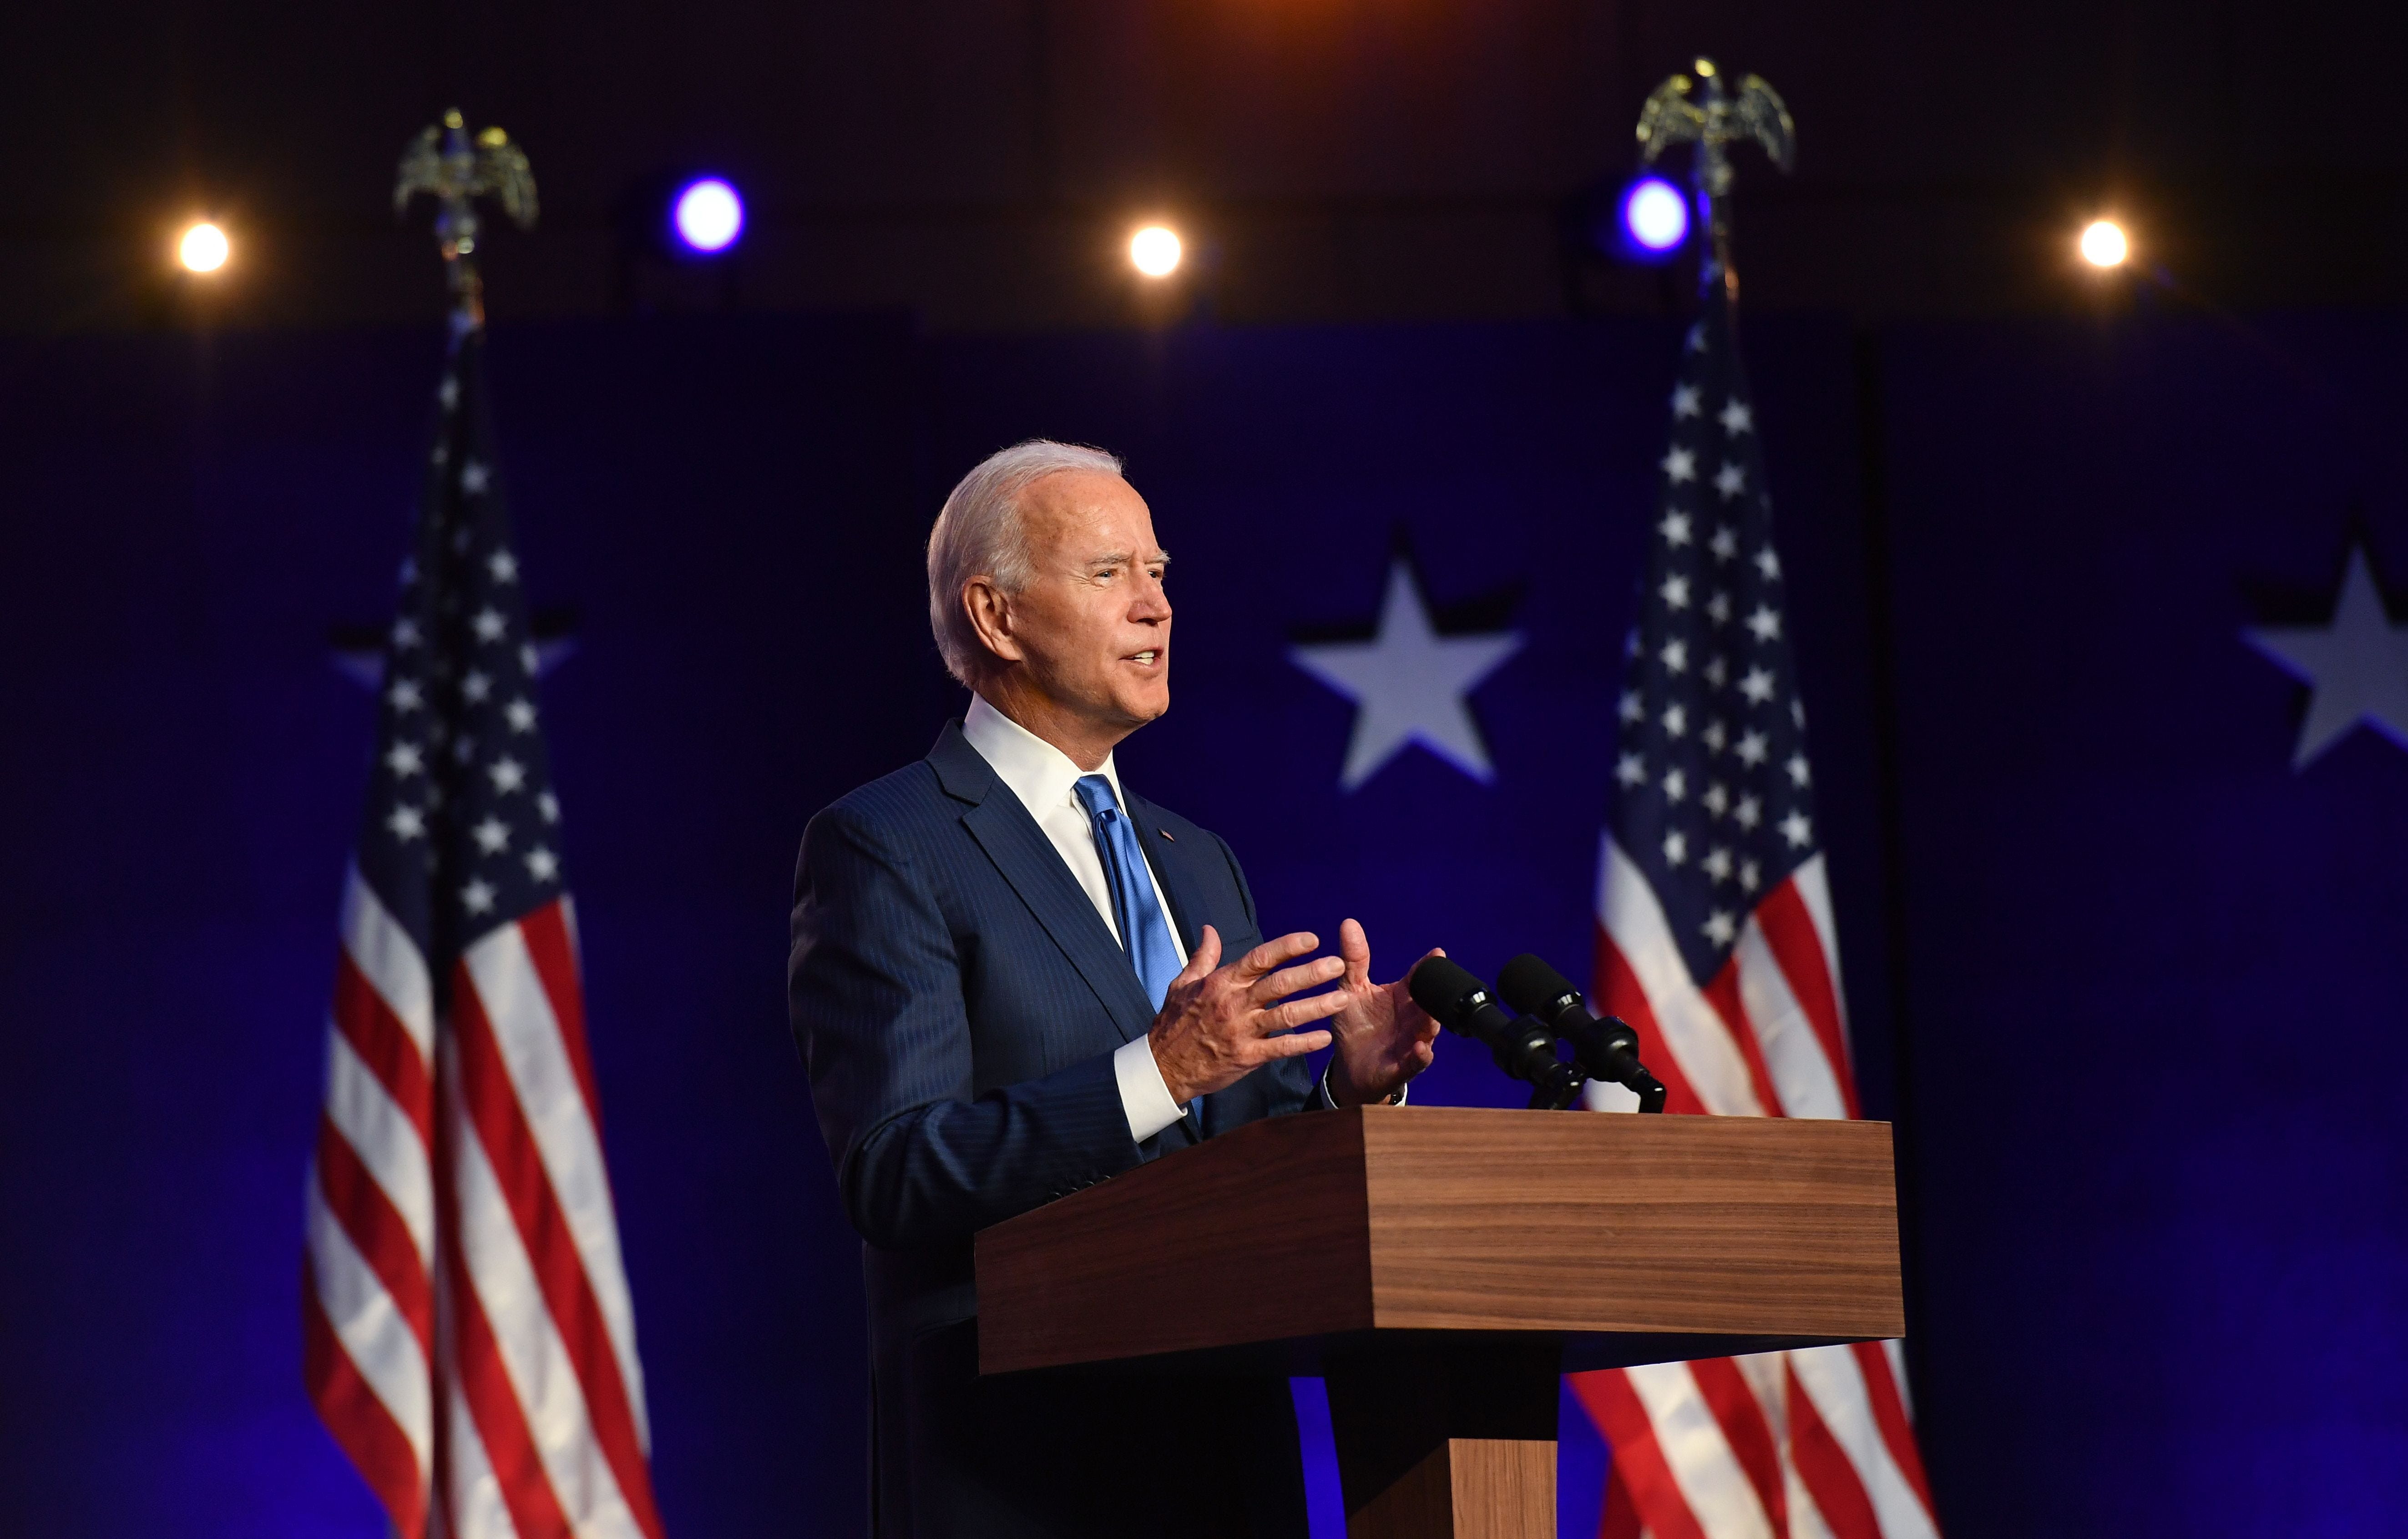 Election results update: Biden says he has a  clear majority  in speech asking for nation to be patient